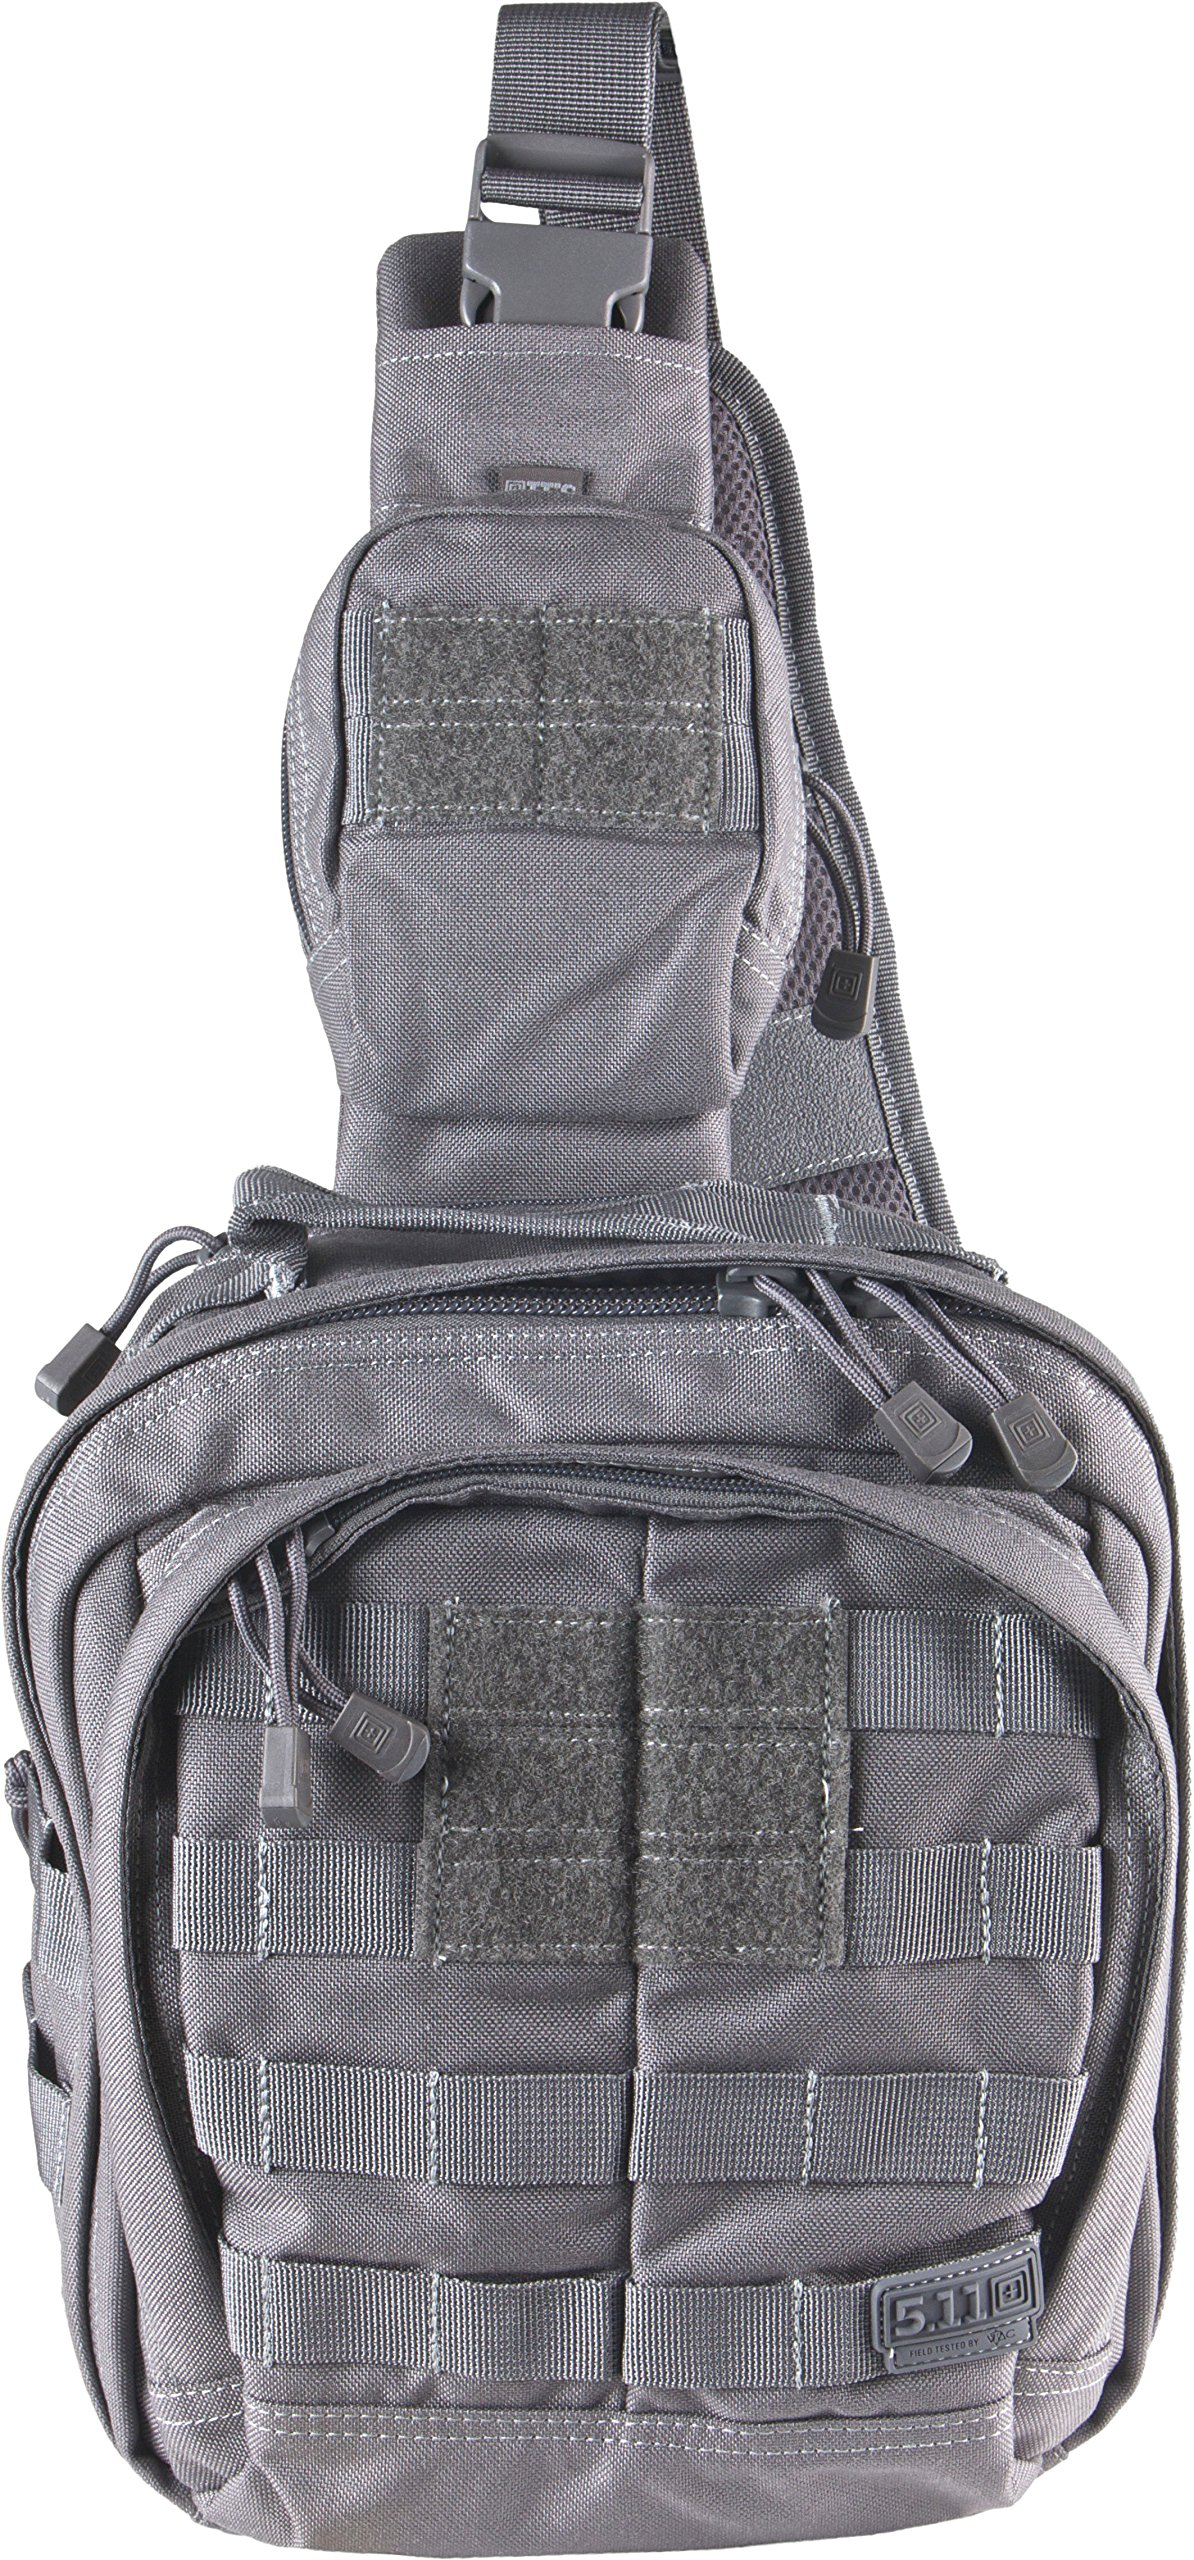 5.11 RUSH MOAB 6 Tactical Sling Pack Military Molle Backpack Bag, Style 56963, Storm